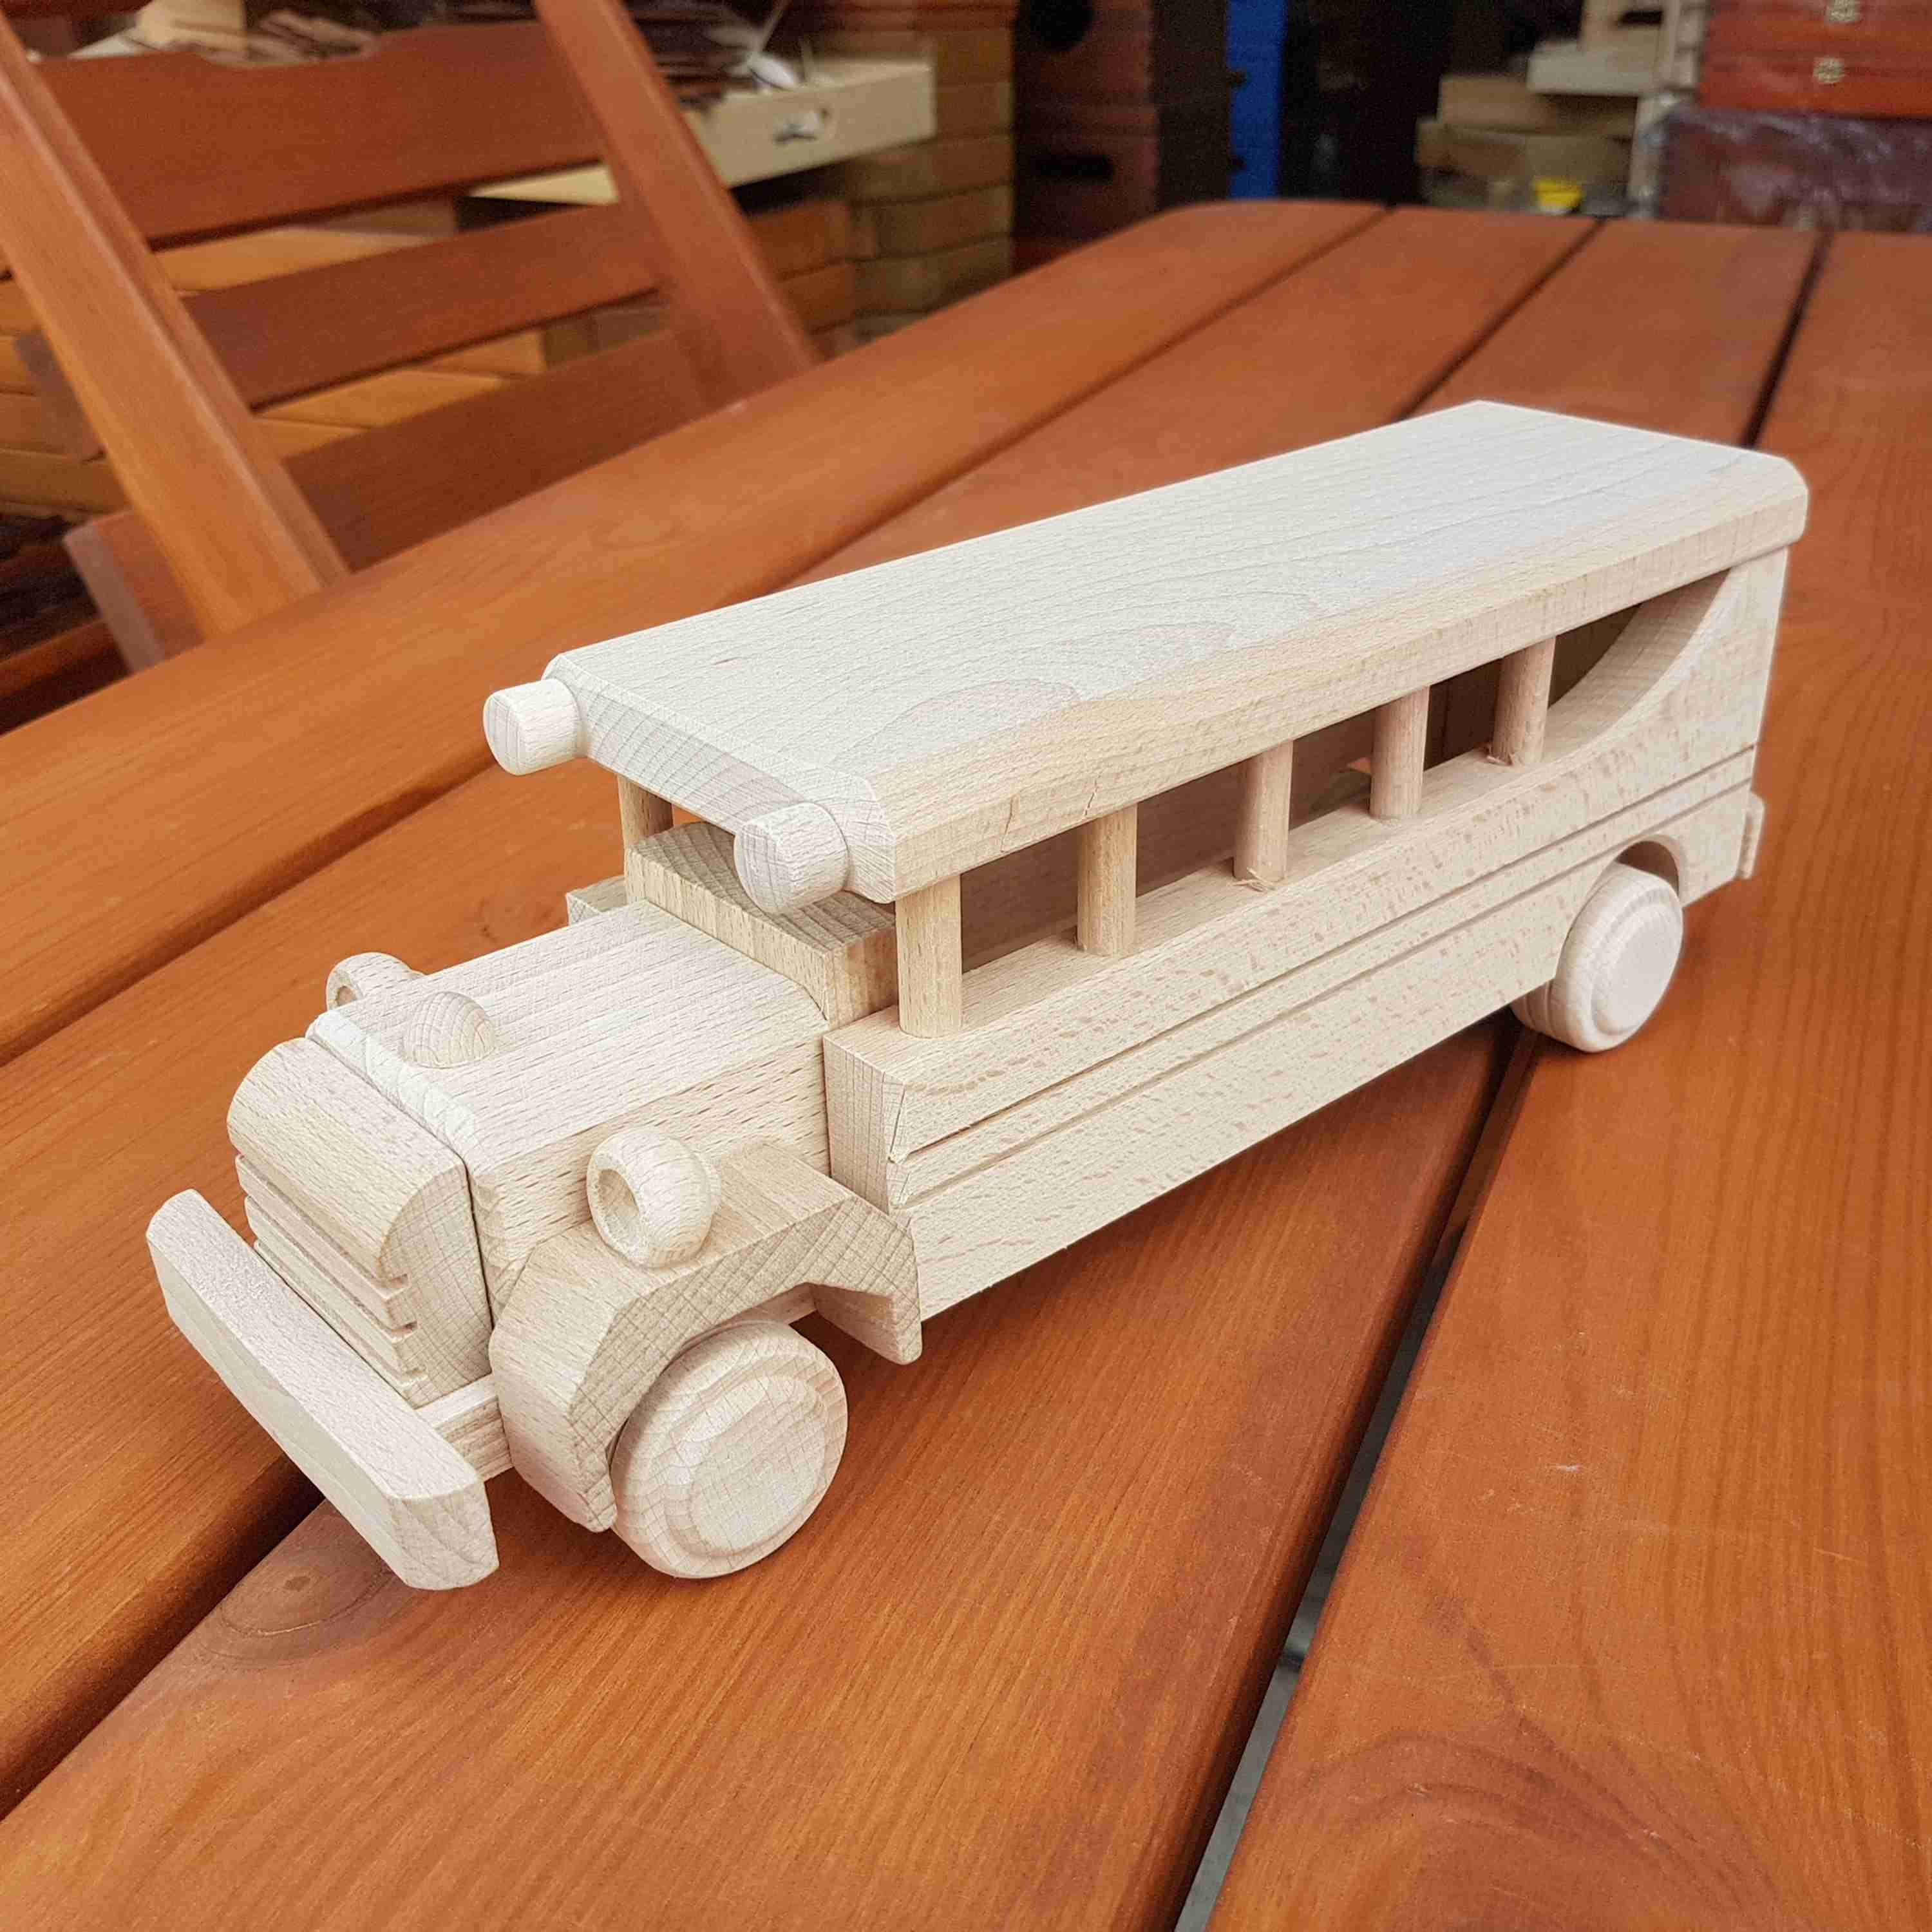 wooden toy bus made of beech wood | wooden toys | wooden